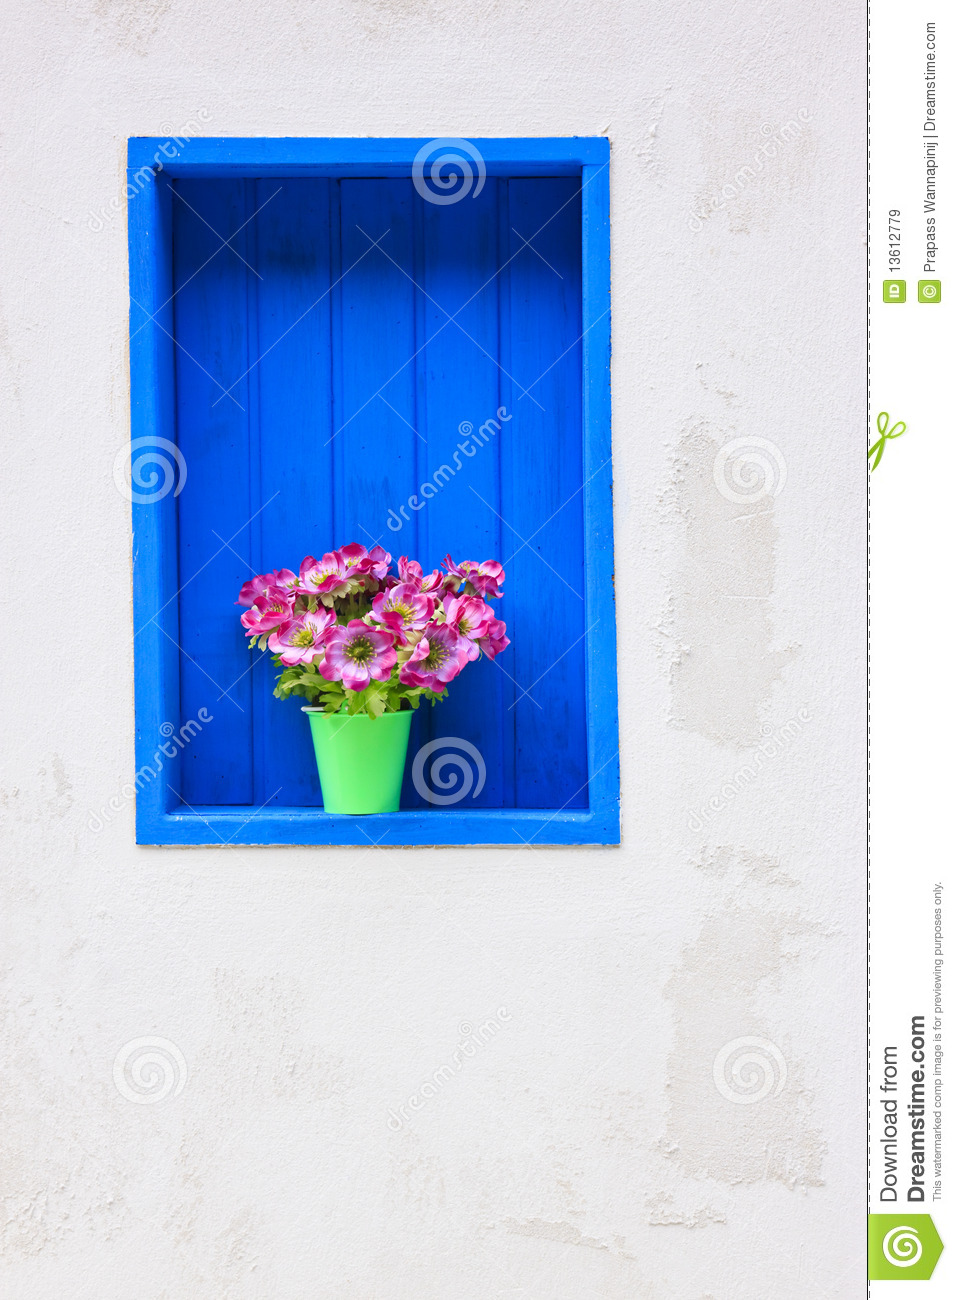 Modern house with colorful blue window royalty free stock for Blue modern house